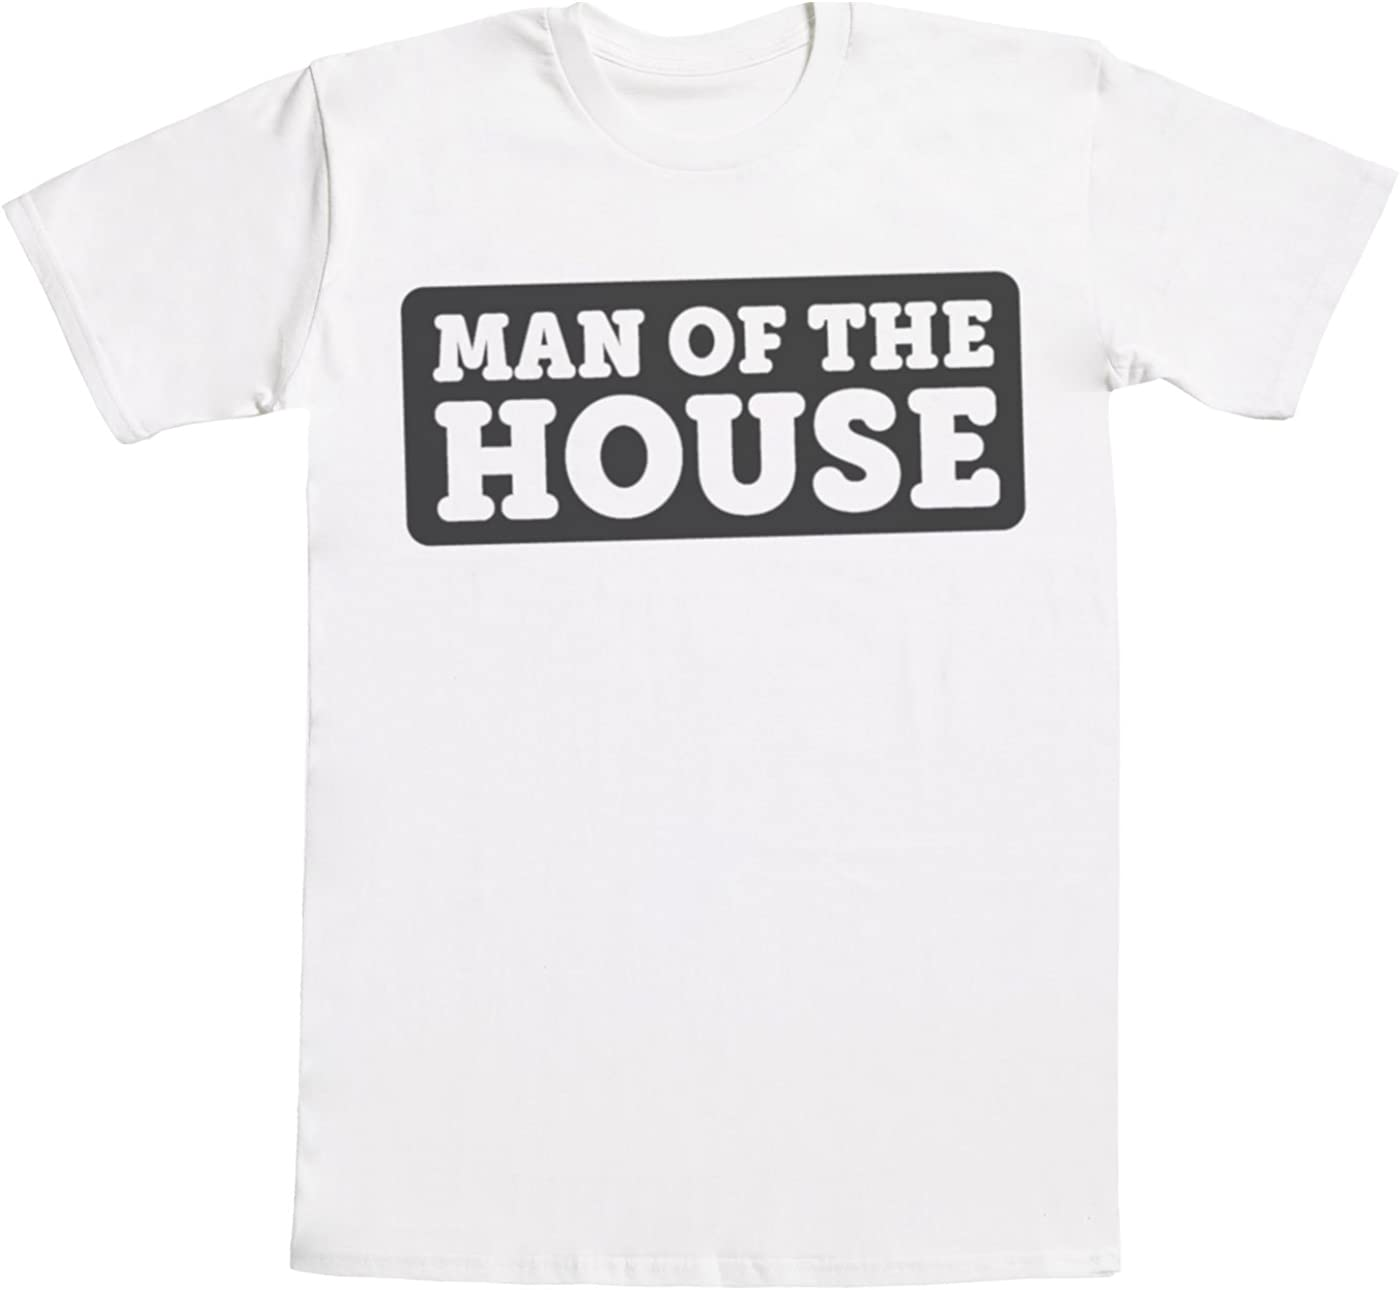 Hommes T-Shirt /& Body b/éb/é Zarlivia Clothing Whos The Daddy? Ensemble P/ère B/éb/é Cadeau